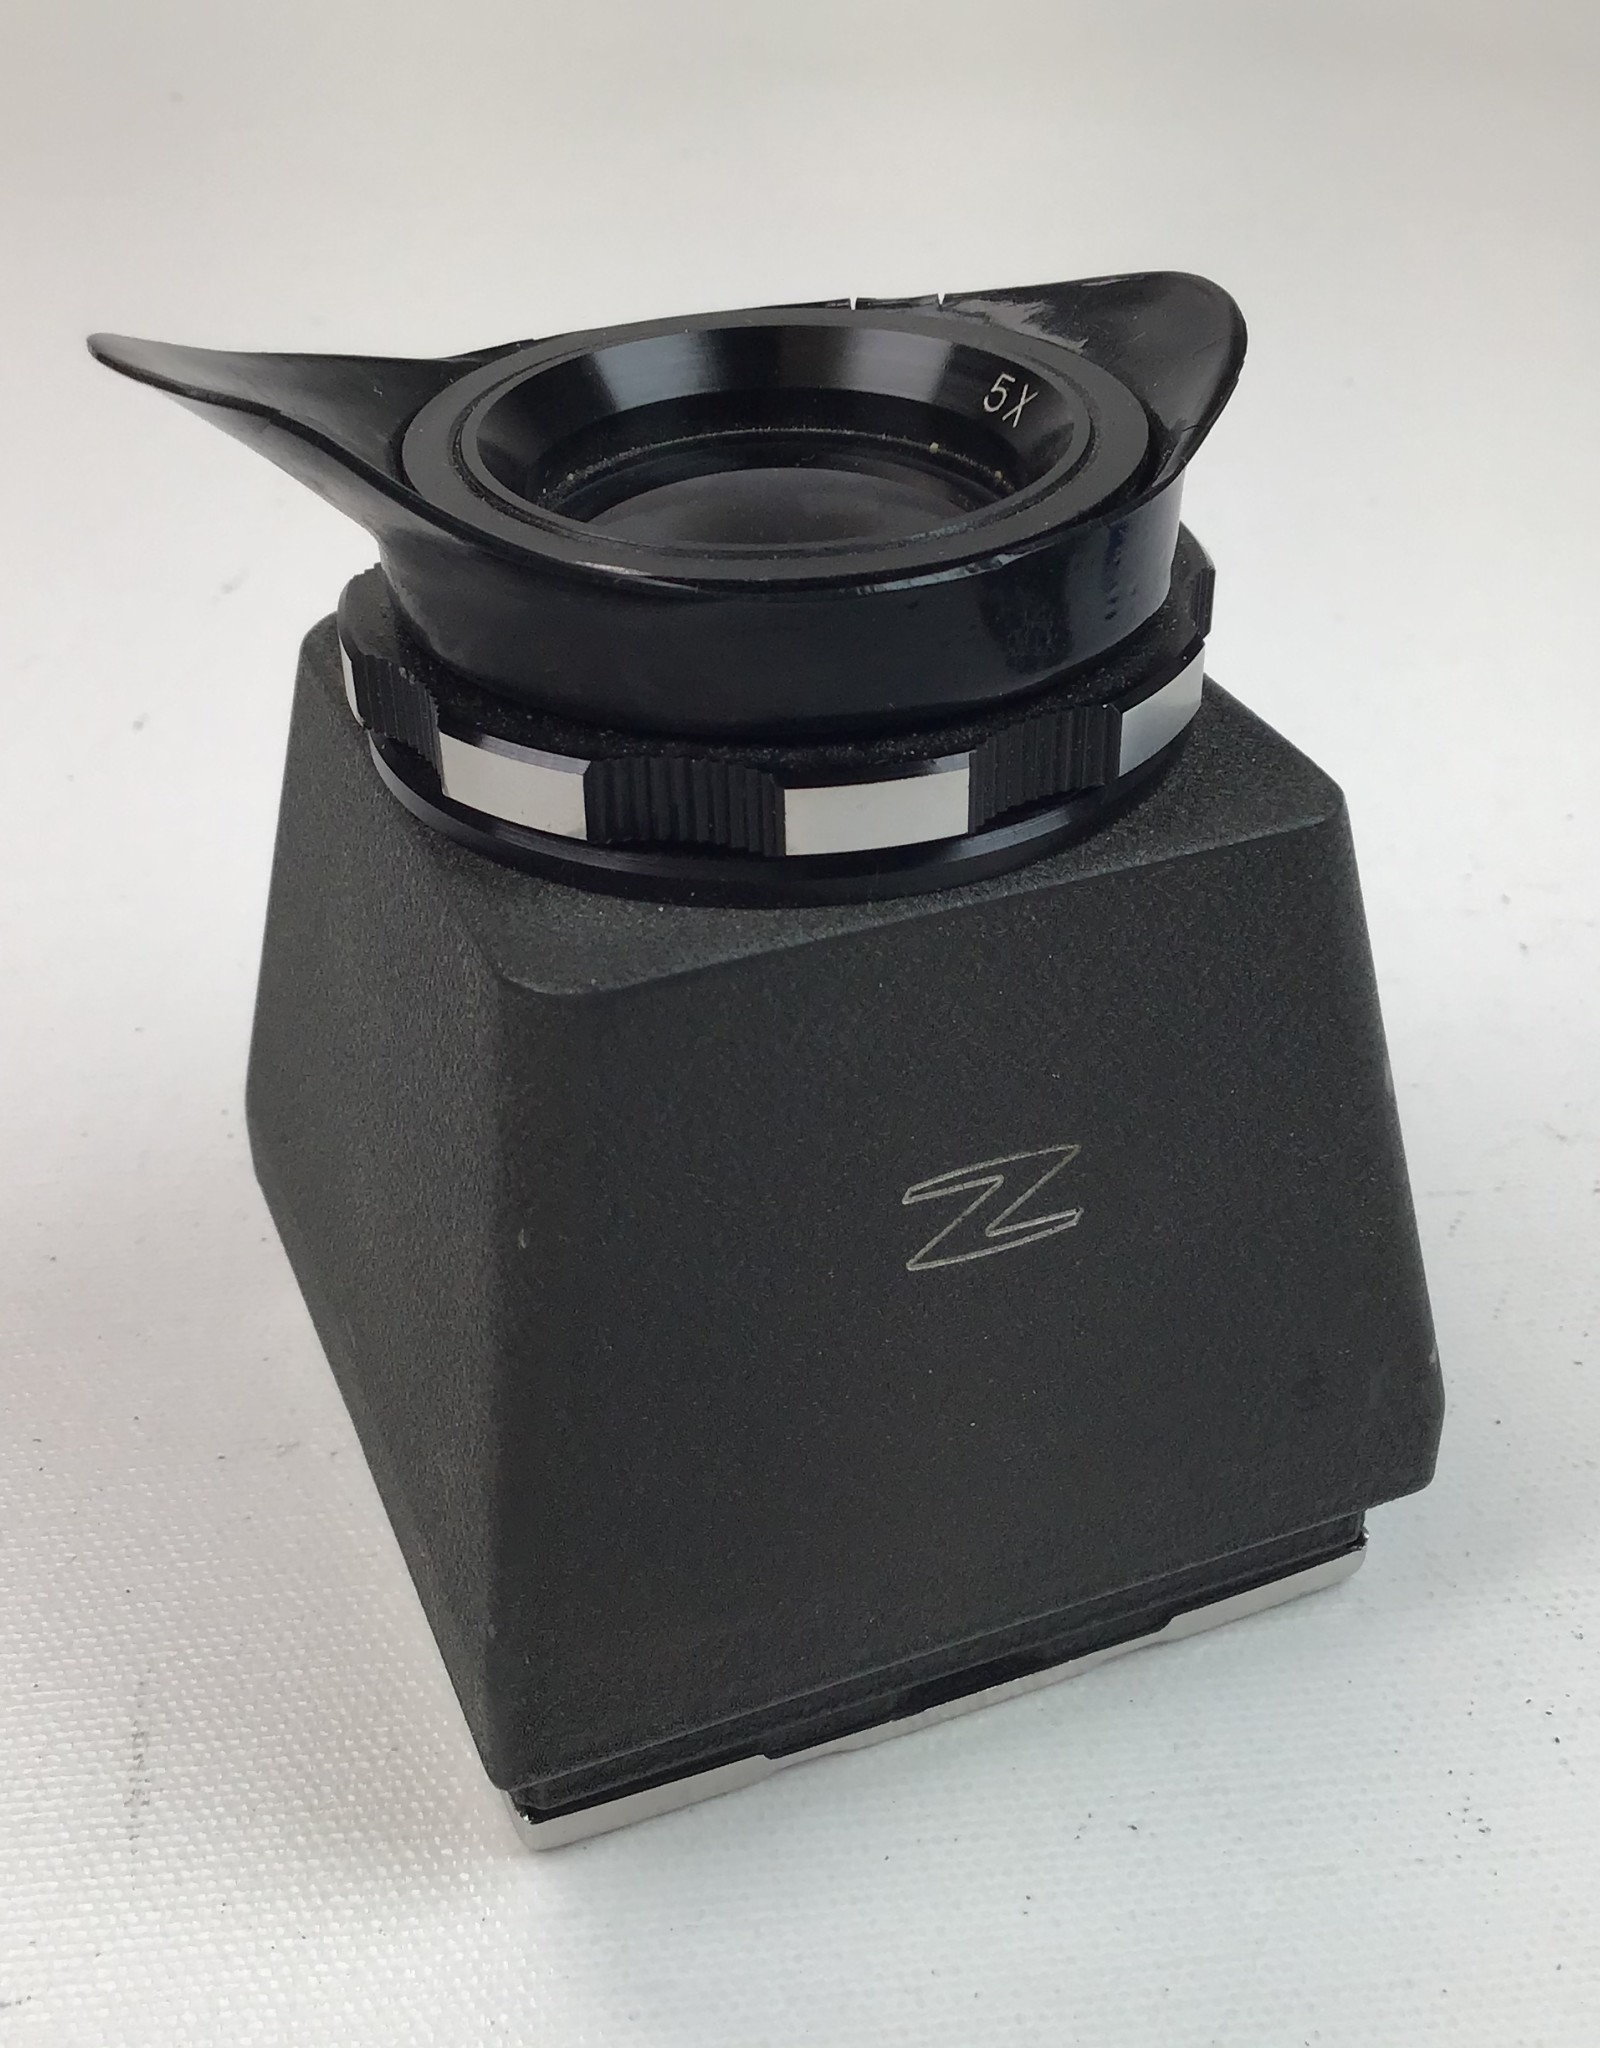 Bronica Bronica Chimney Finder for S2 Camera Used EX